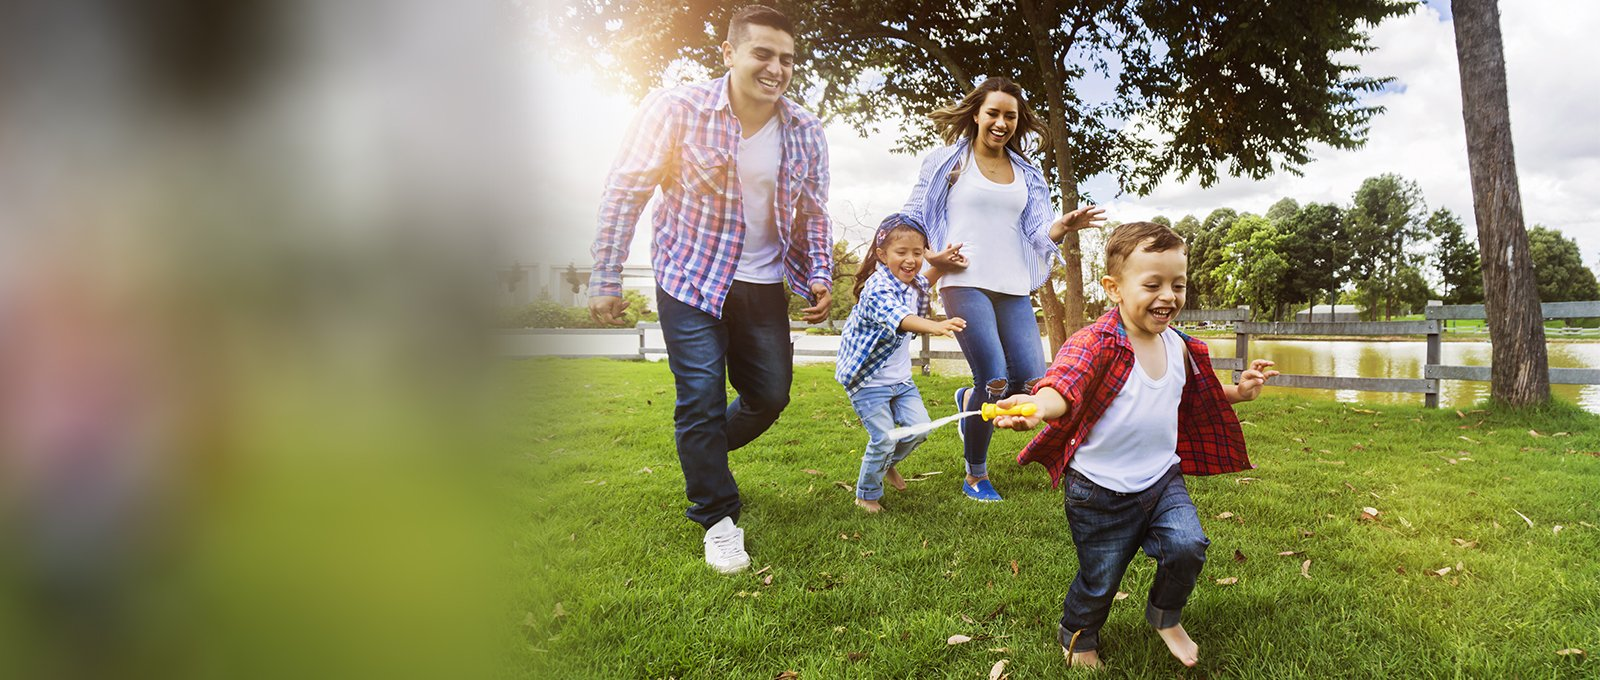 Image of active healthy family playing in the park